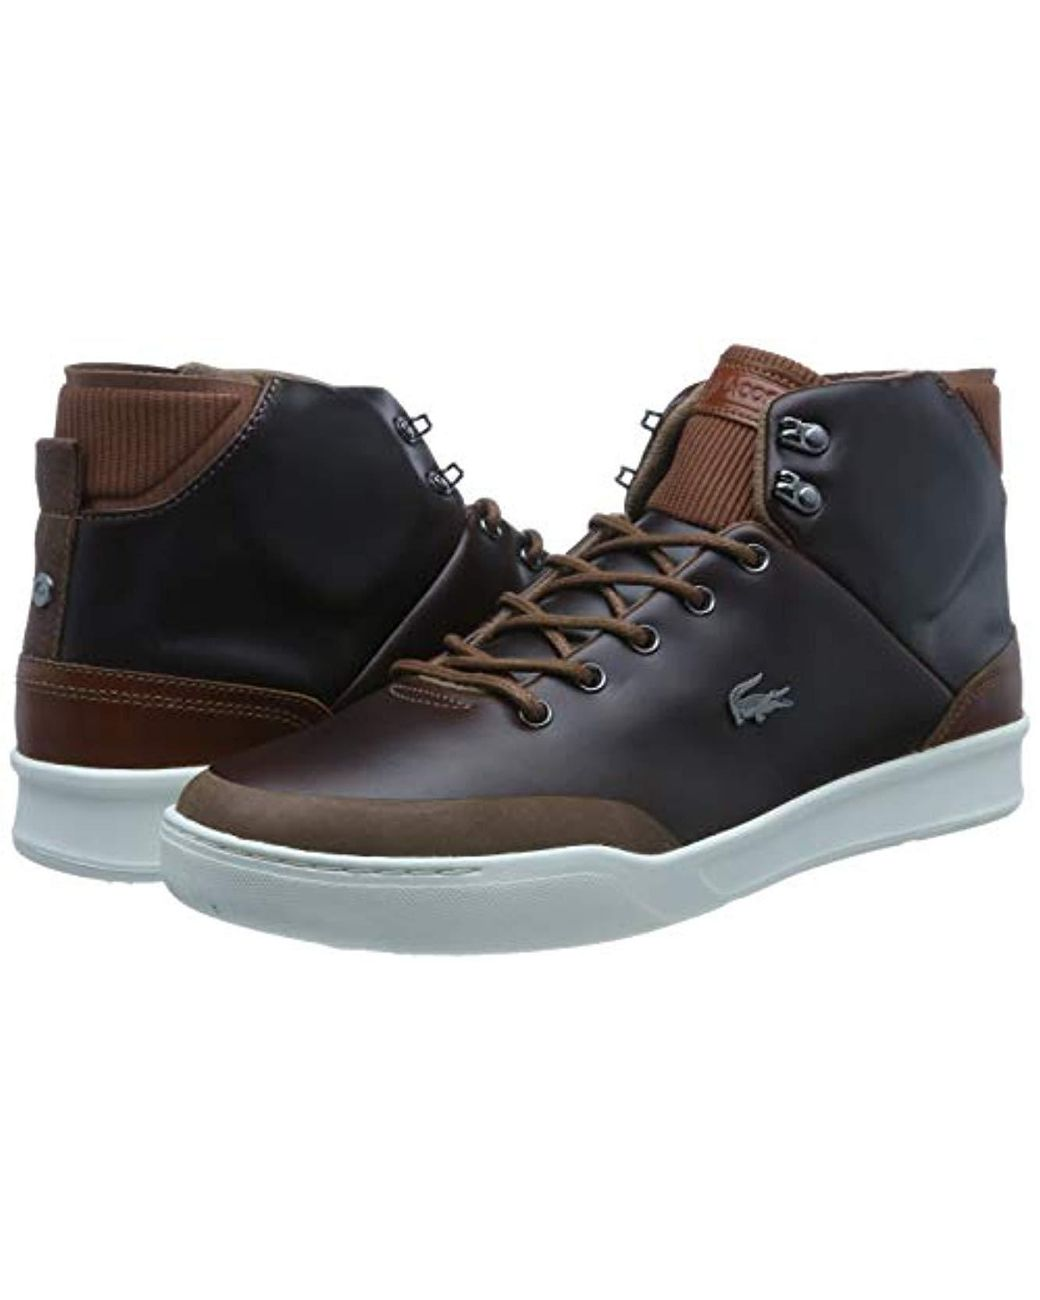 1b11585d322d Lacoste Explorateur Classic 318 1 Cam Trainers in Brown for Men - Lyst